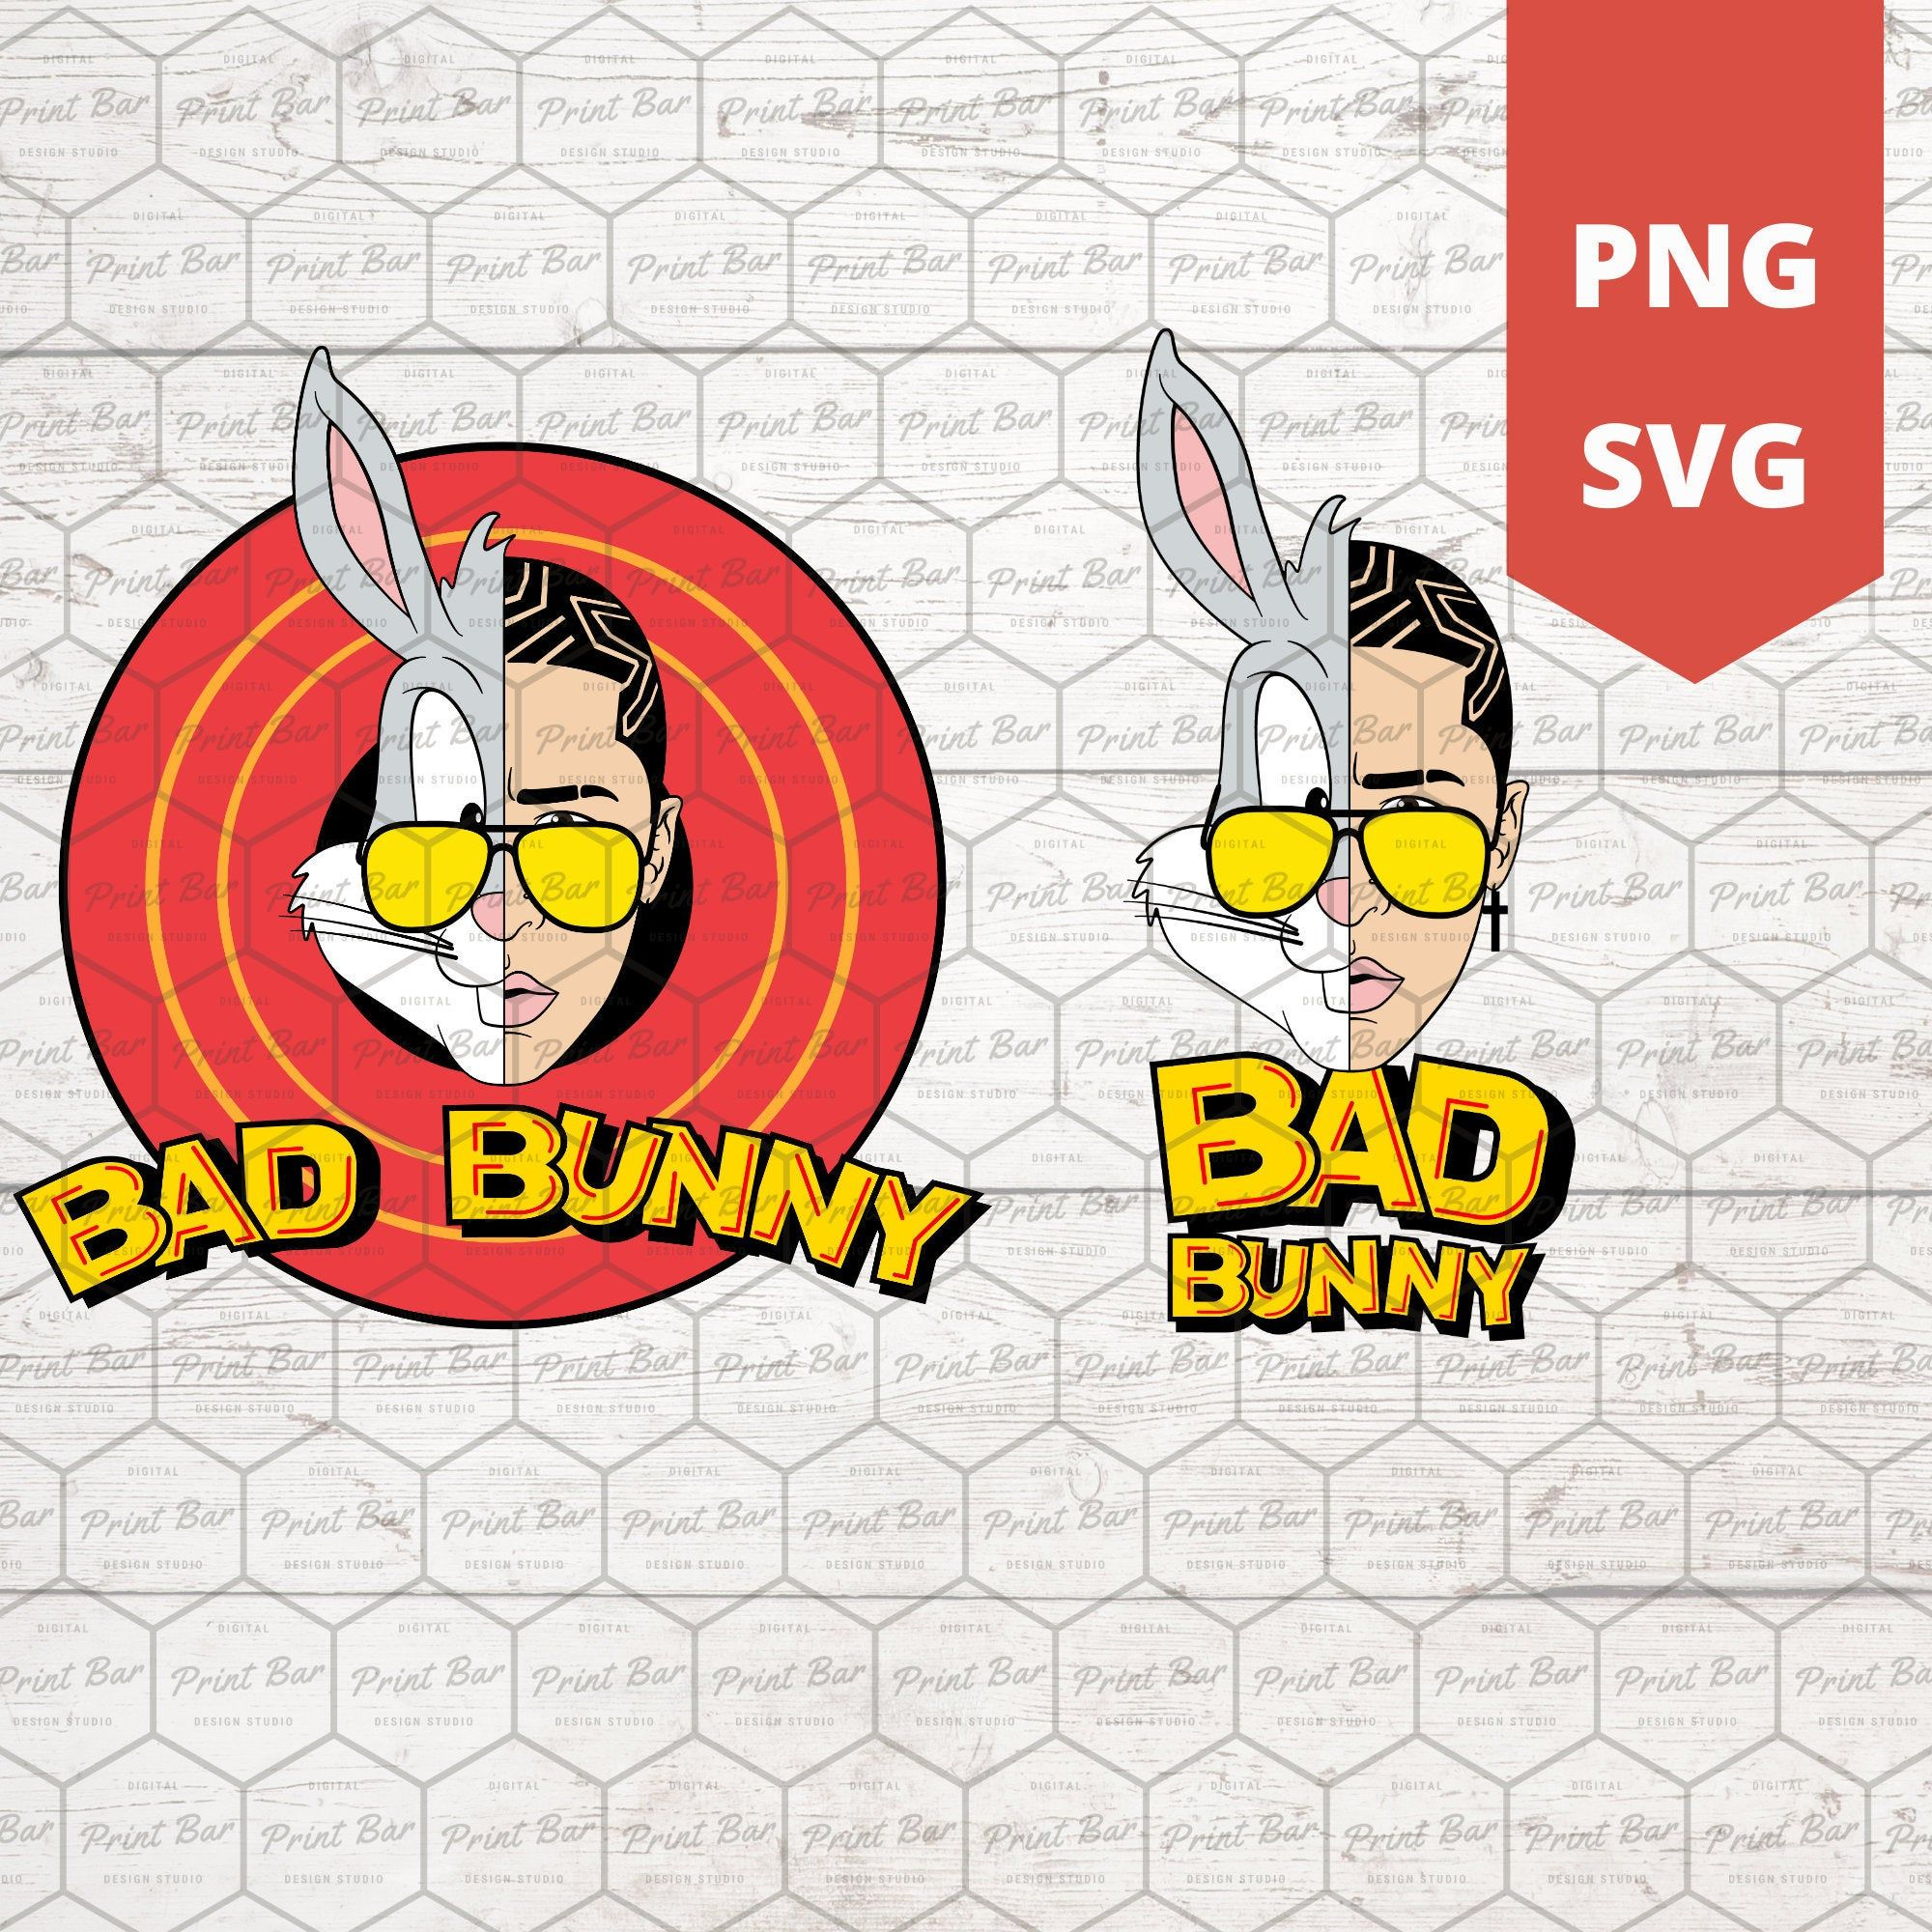 Bugs Bad Bunny SVG / PNG Etsy in 2020 Bunny svg, Bunny